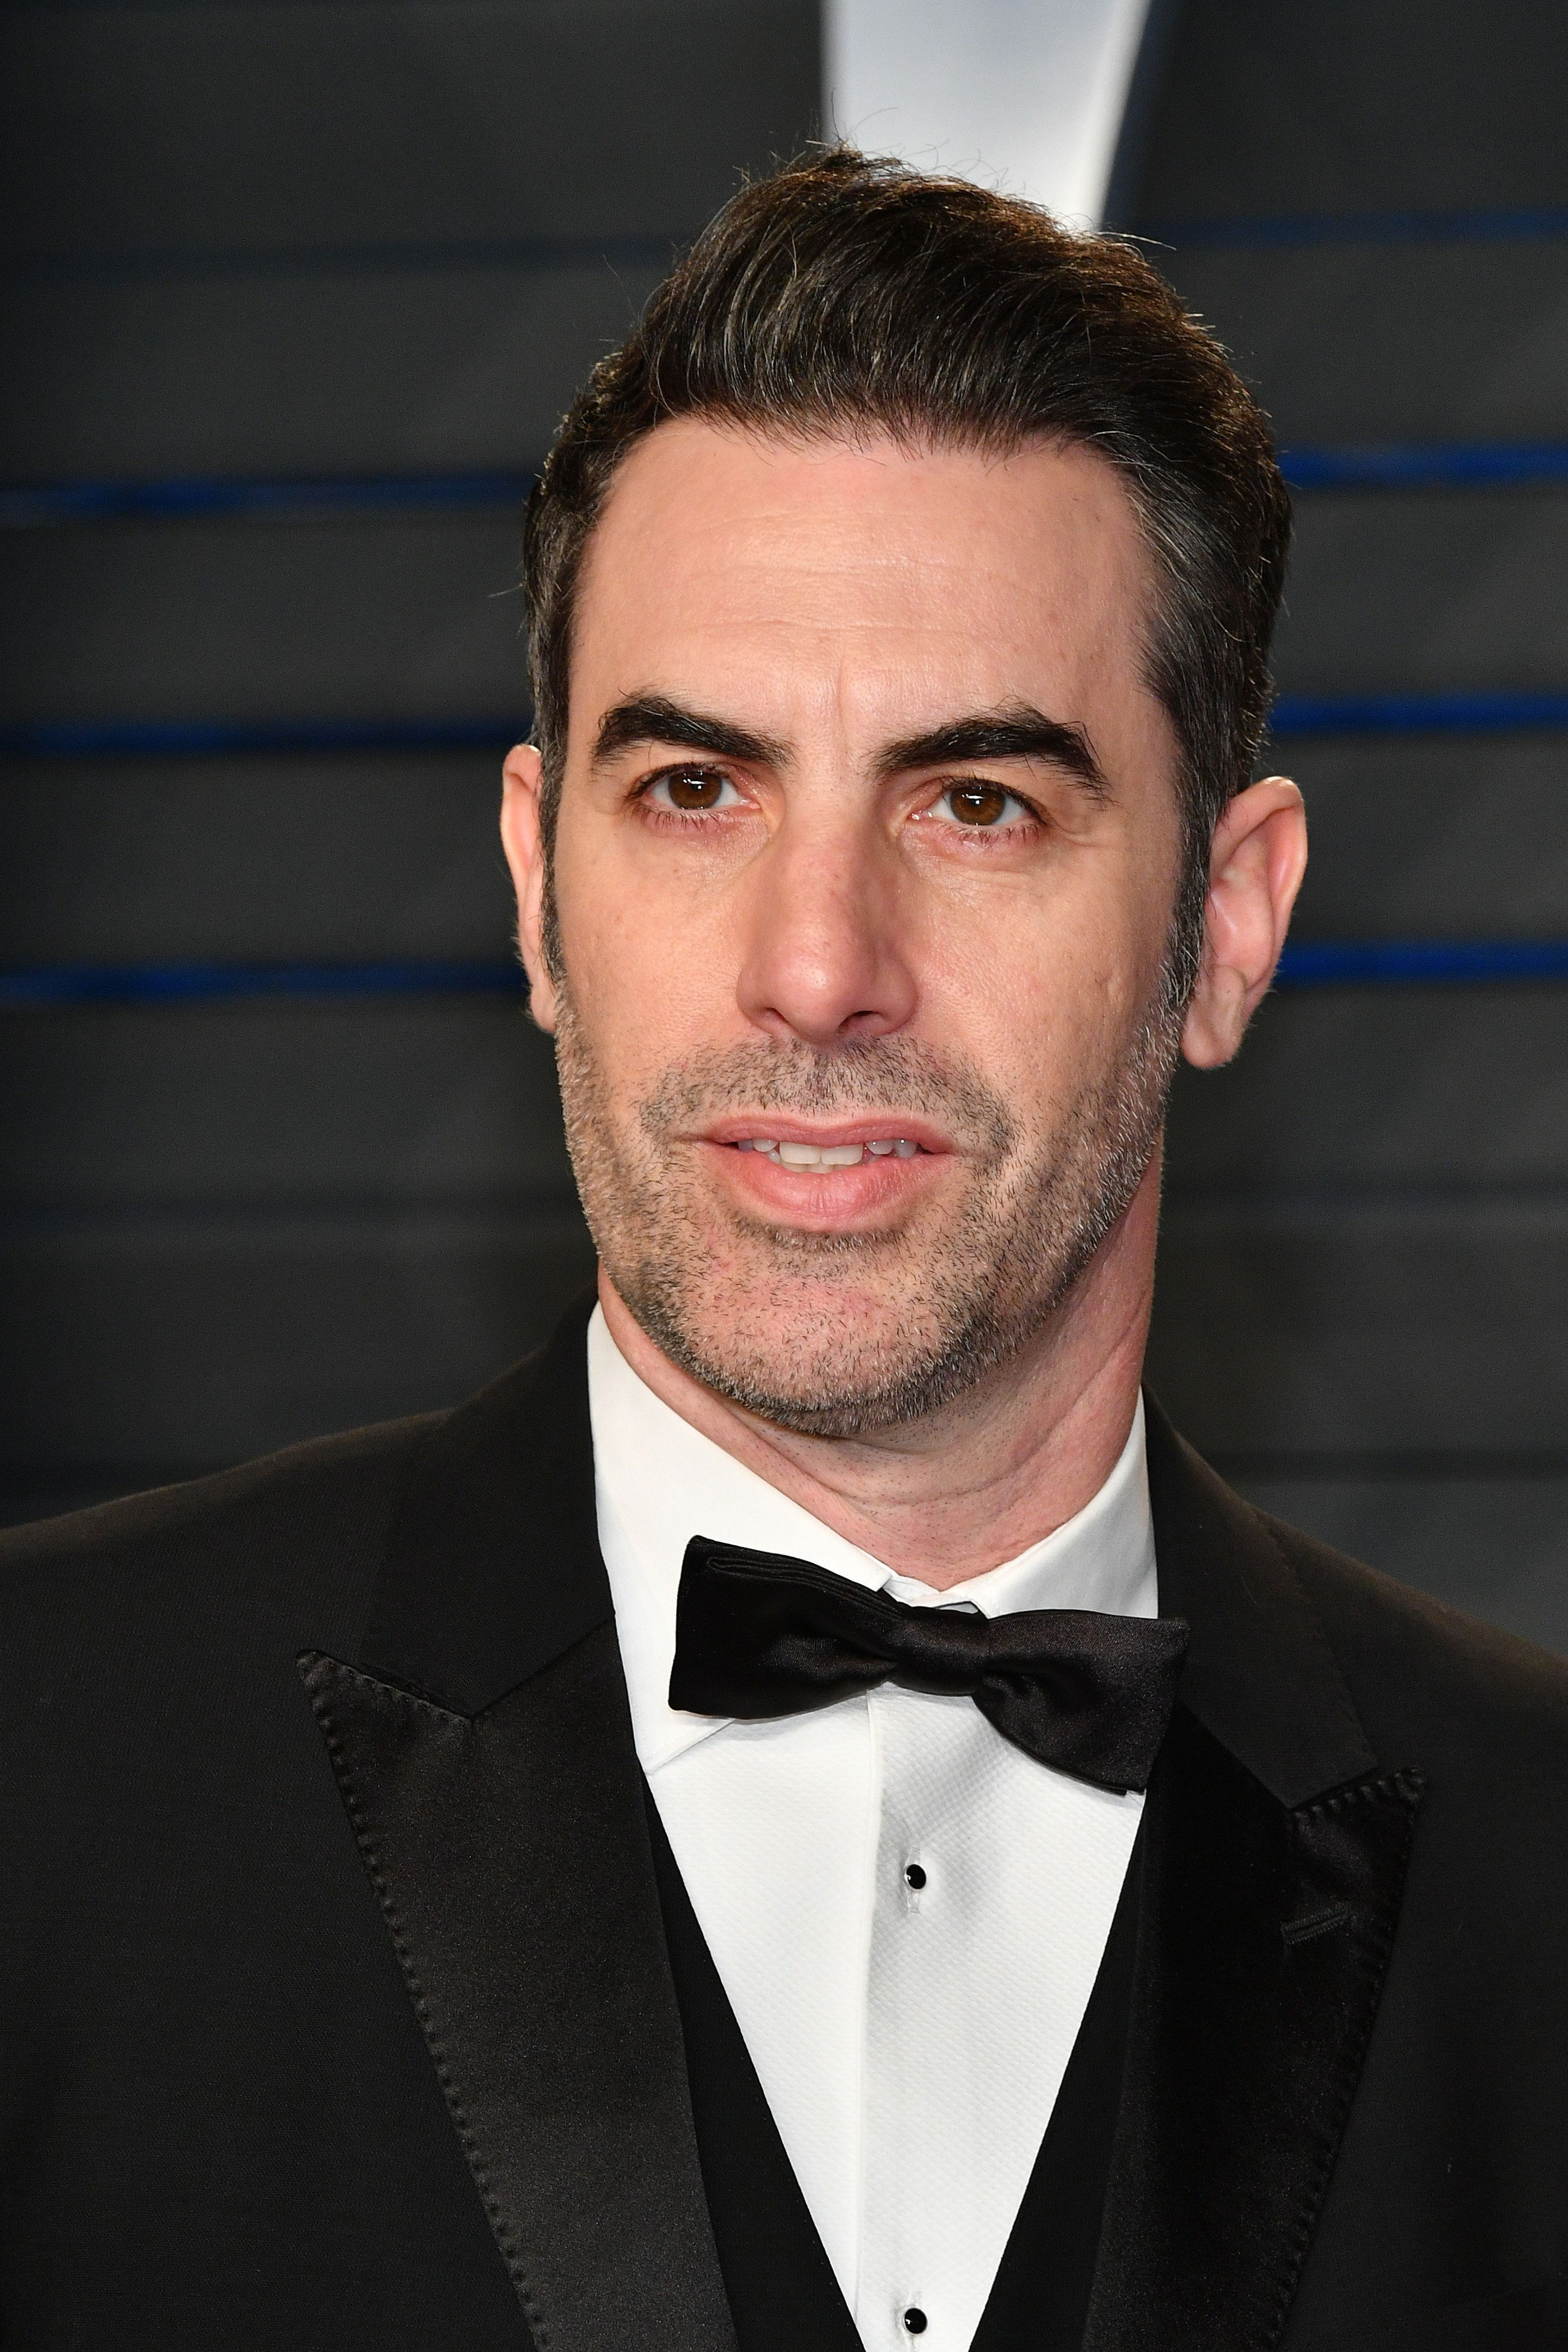 BEVERLY HILLS, CA - MARCH 04: Sacha Baron Cohen attends the 2018 Vanity Fair Oscar Party hosted by Radhika Jones at Wallis Annenberg Center for the Performing Arts on March 4, 2018 in Beverly Hills, California.  (Photo by Dia Dipasupil/Getty Images)